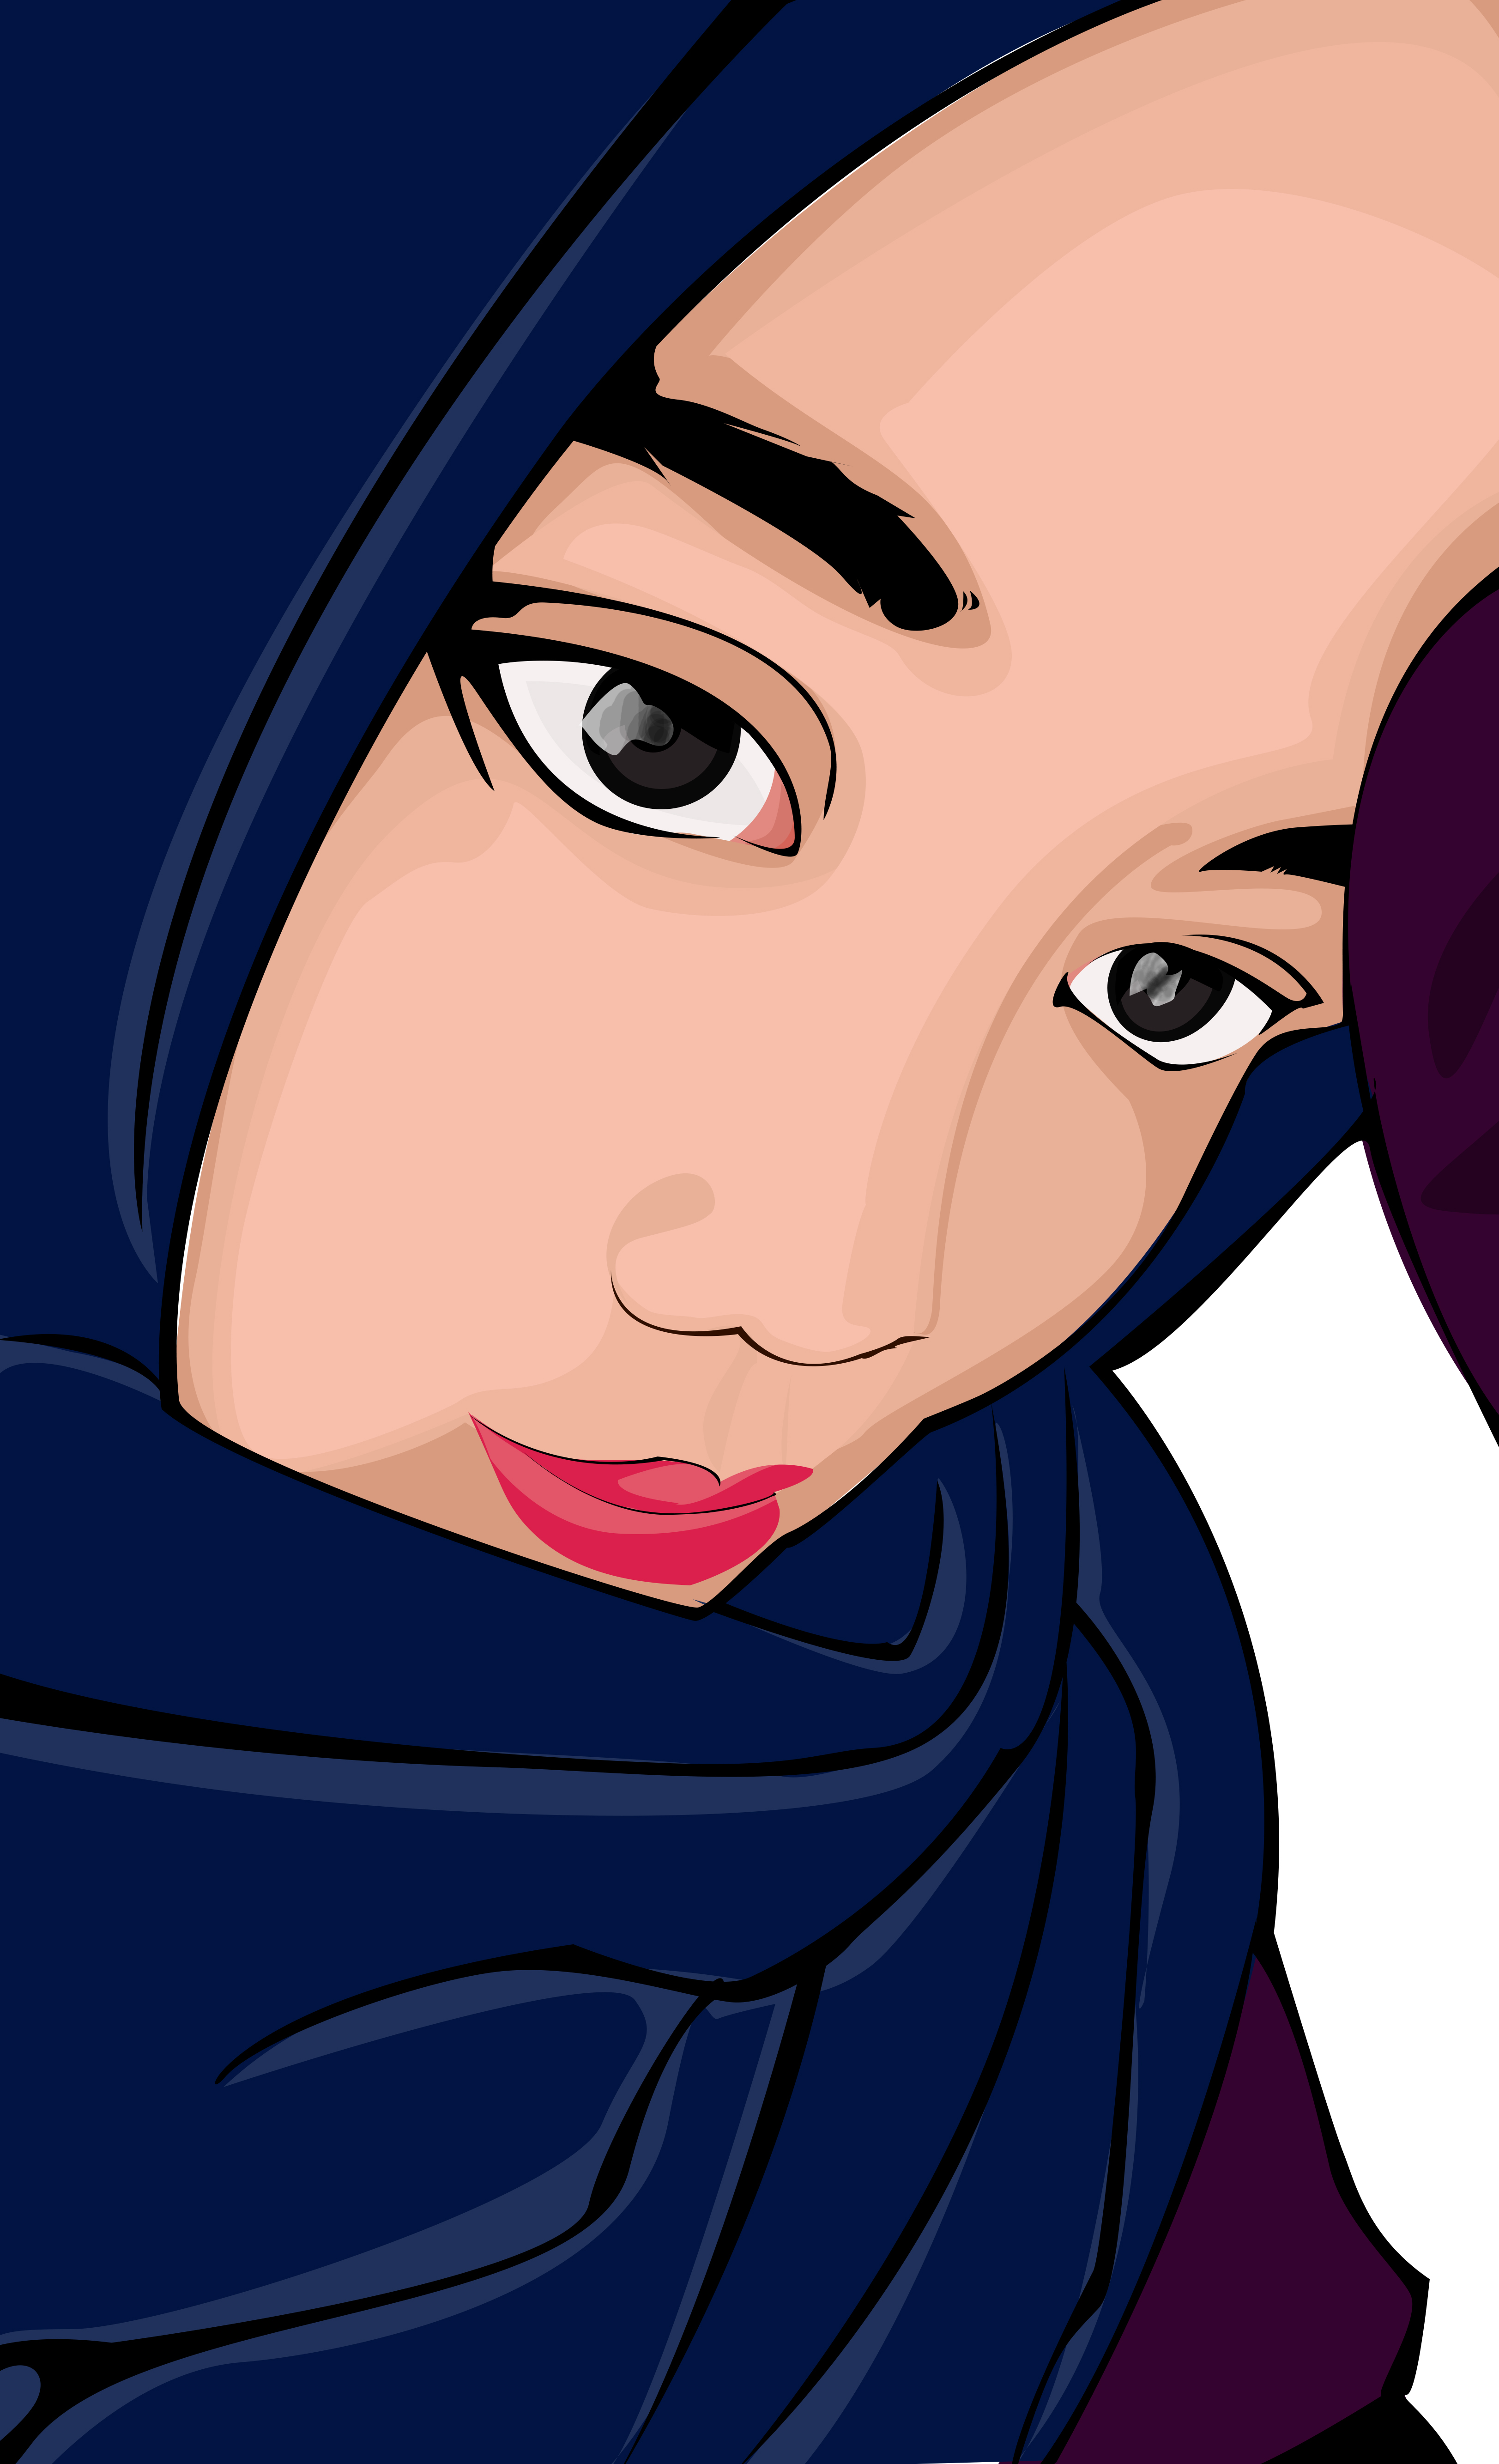 vector art a day, low budget, high quality, and 100 persent original